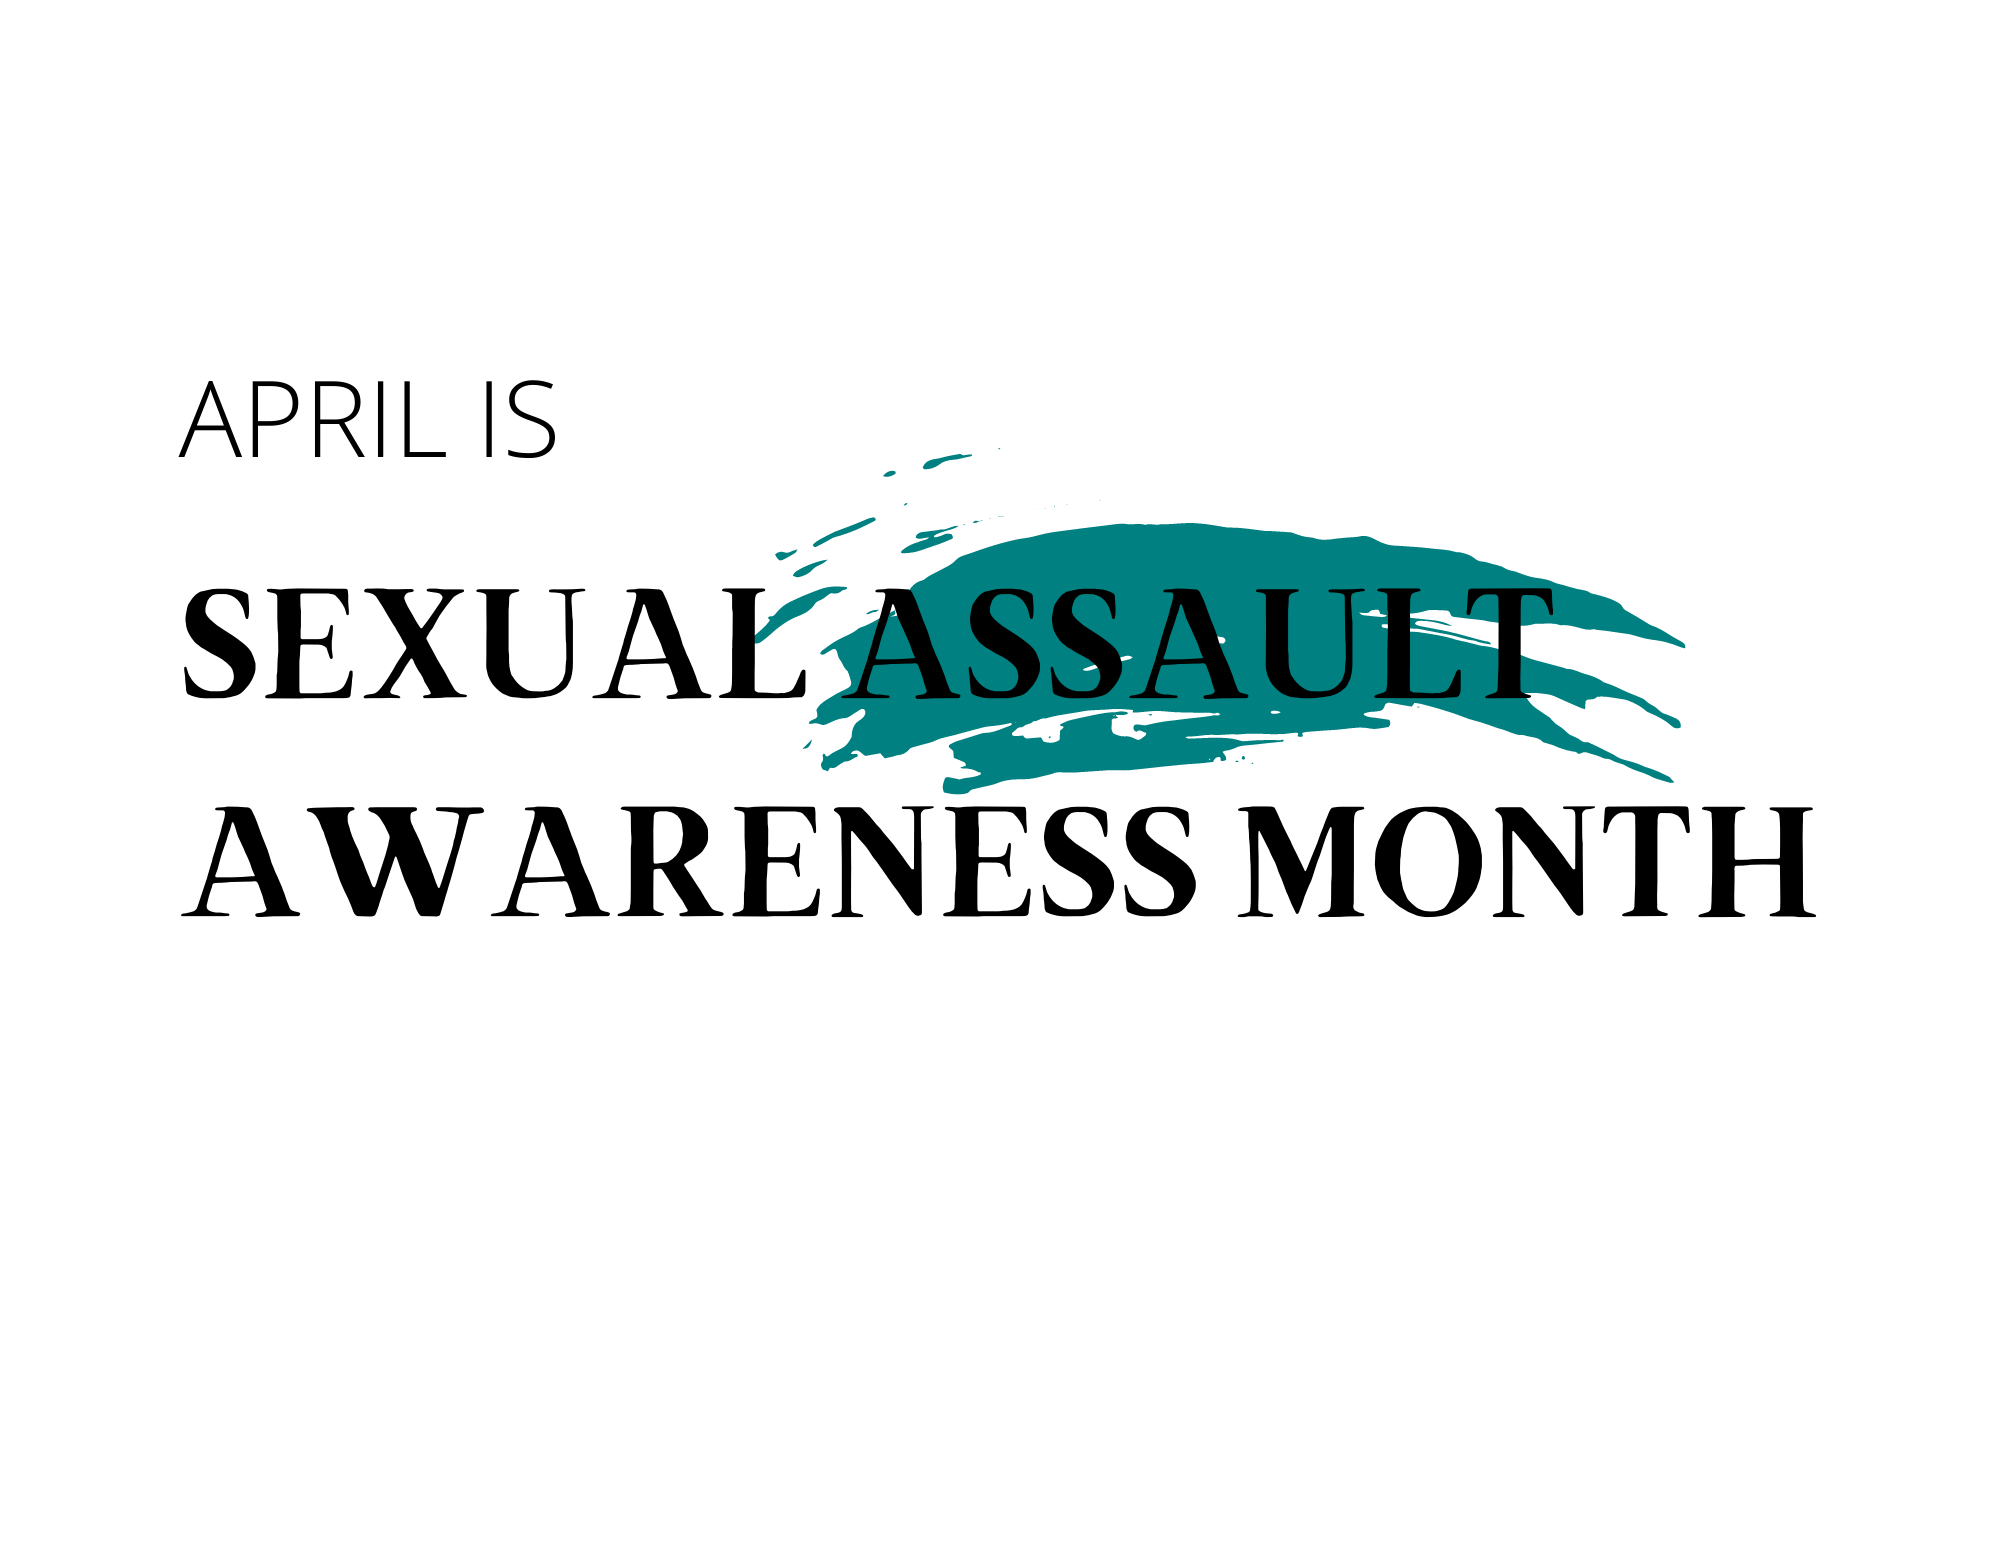 Sexual Assault Awareness Month - Safety Tips for Traveling